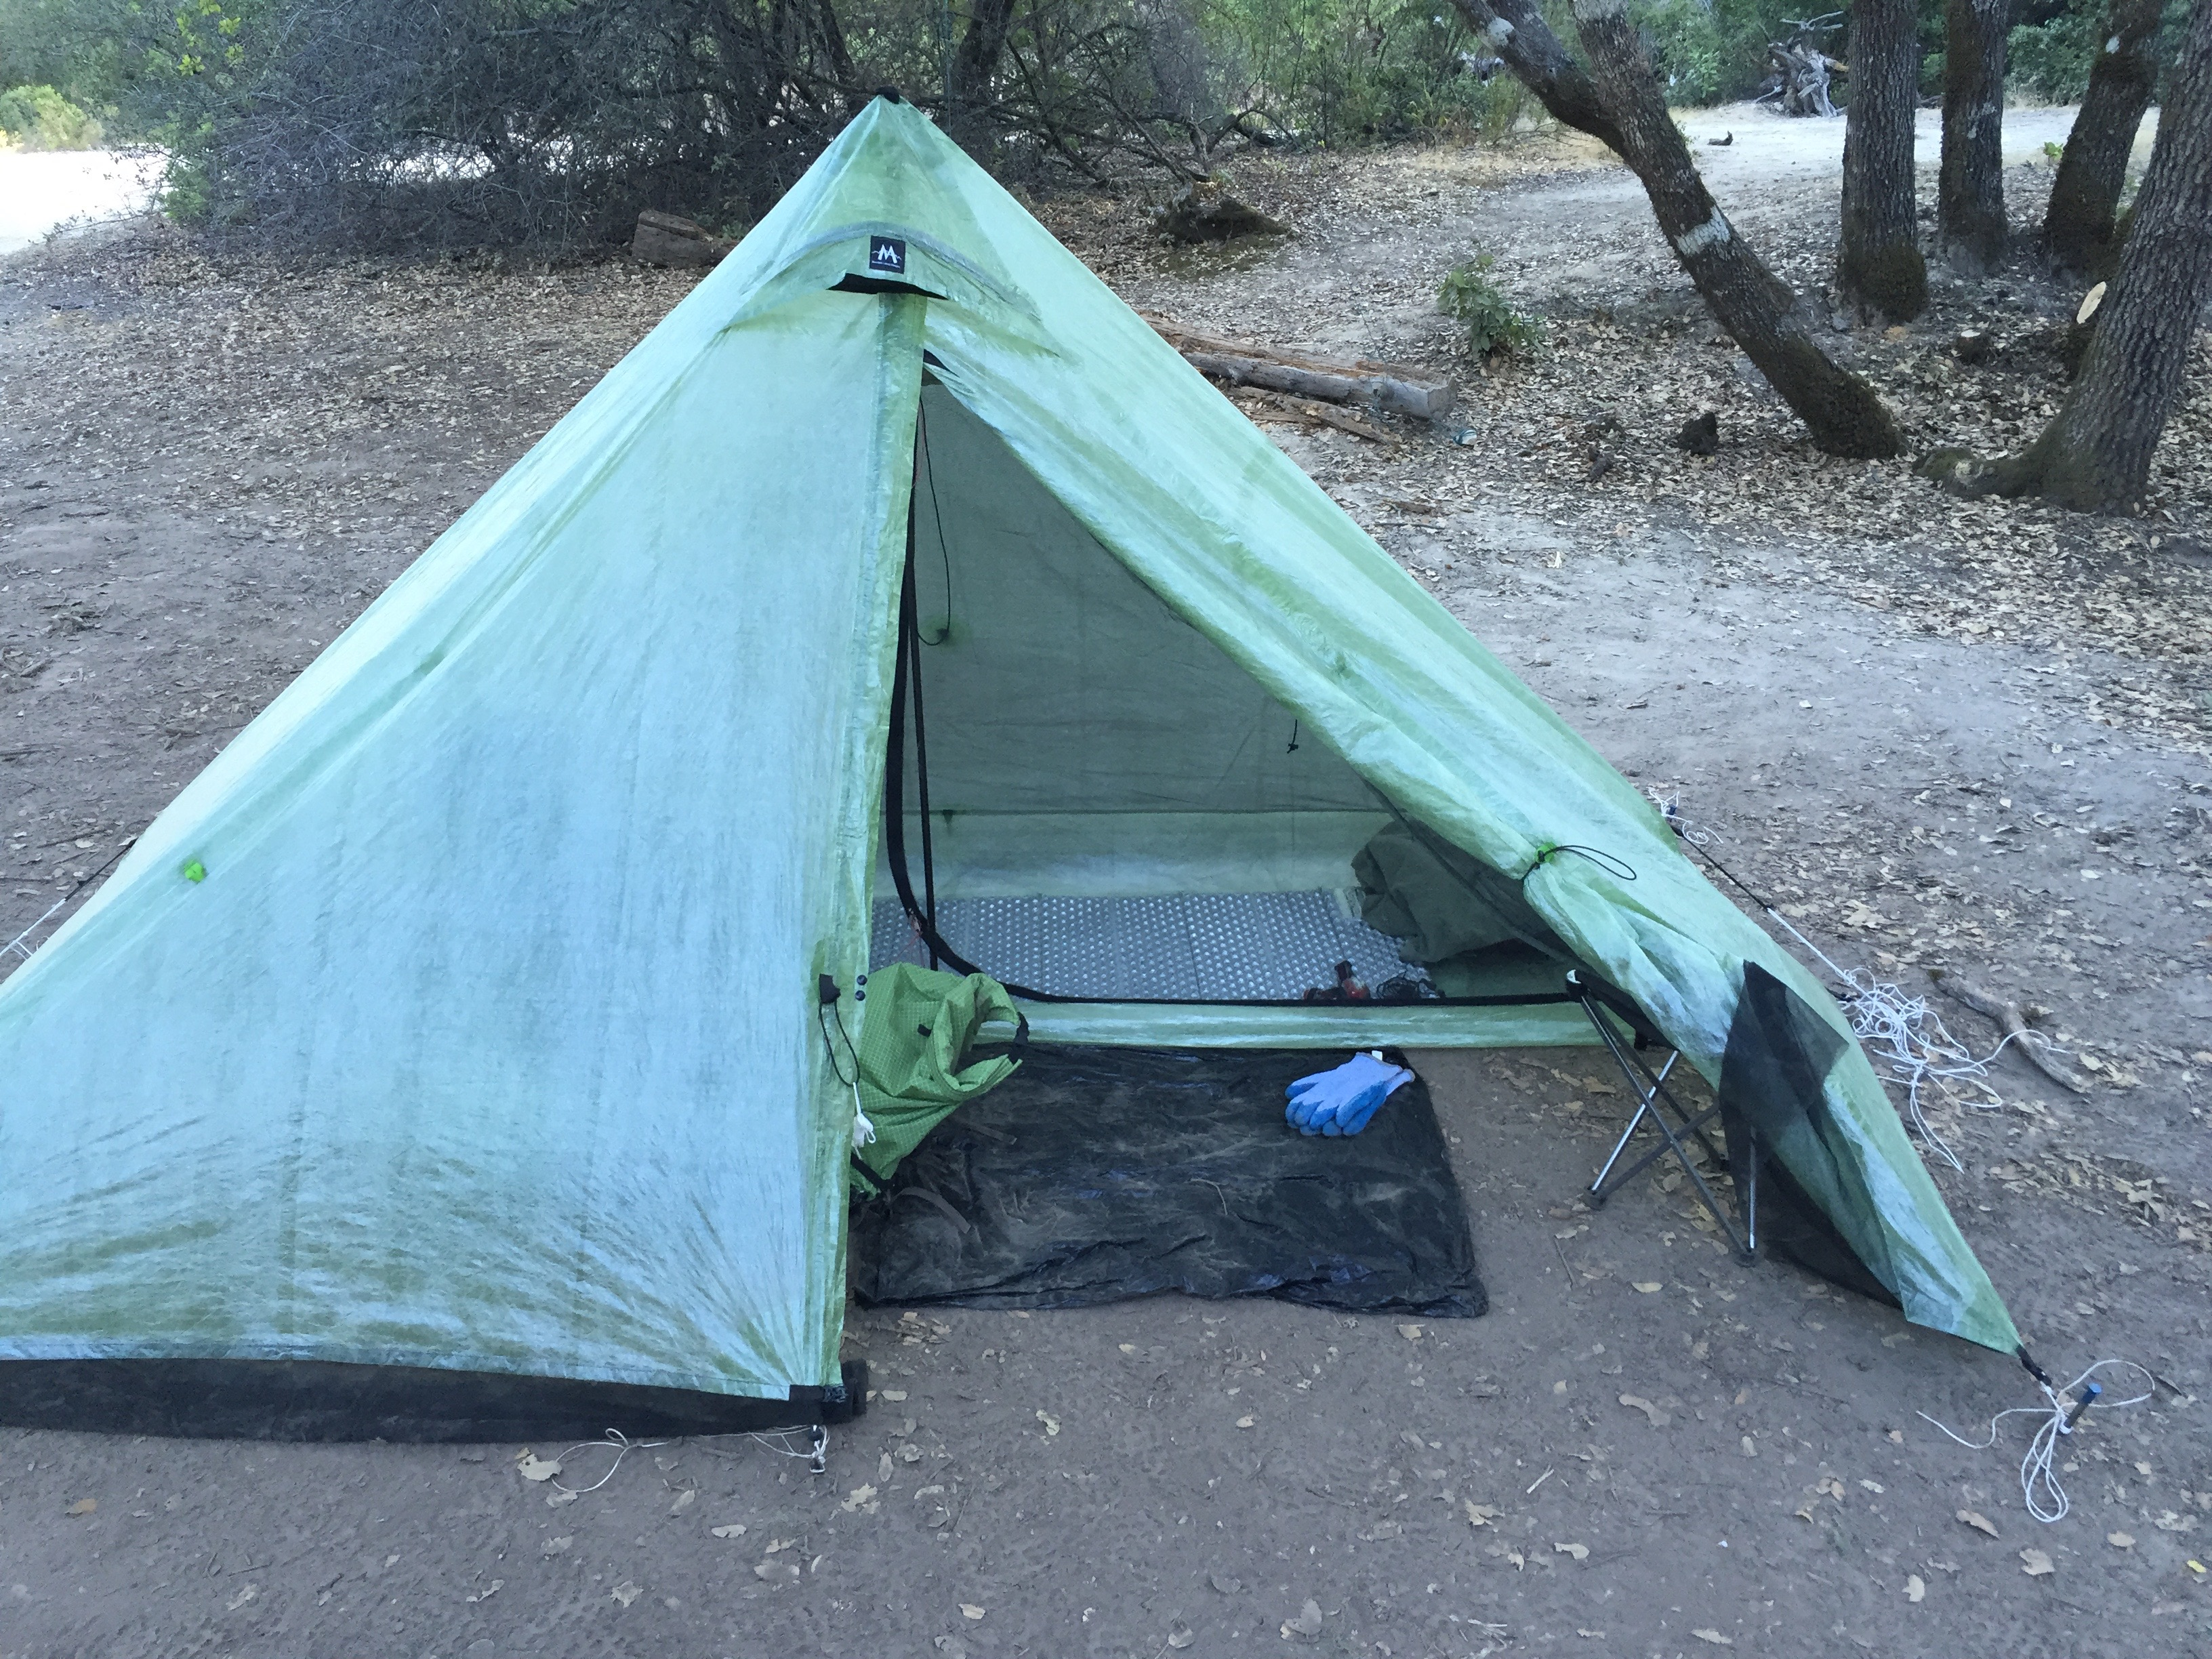 The pyramid tent is sold like a tarp. Thereu0027s no innernet bundled with it but there are a few versions available sold separately. & Mountain Laurel Designs (MLD) Duomid Review | Camping Stoves and ...